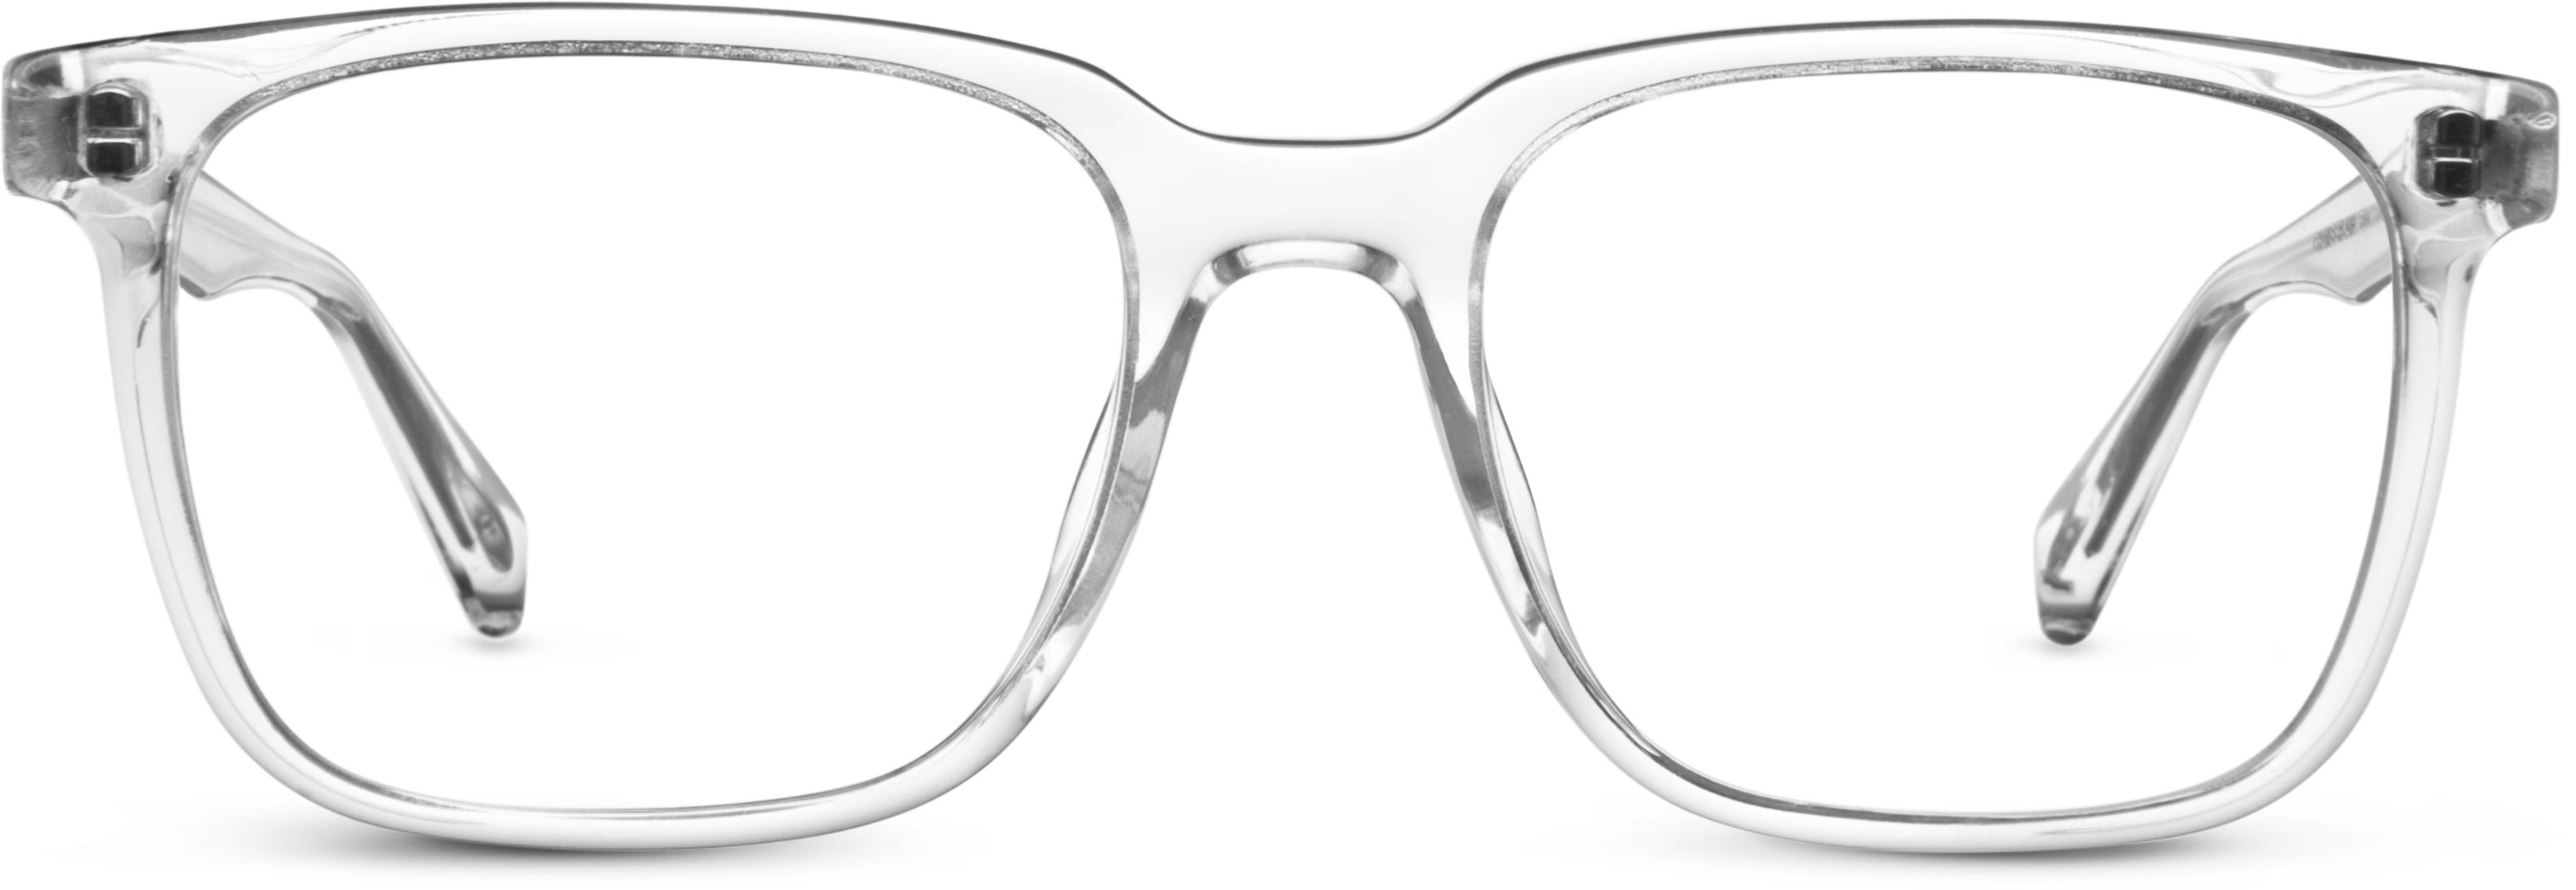 Chamberlain Eyeglasses in Crystal for Men | Warby Parker